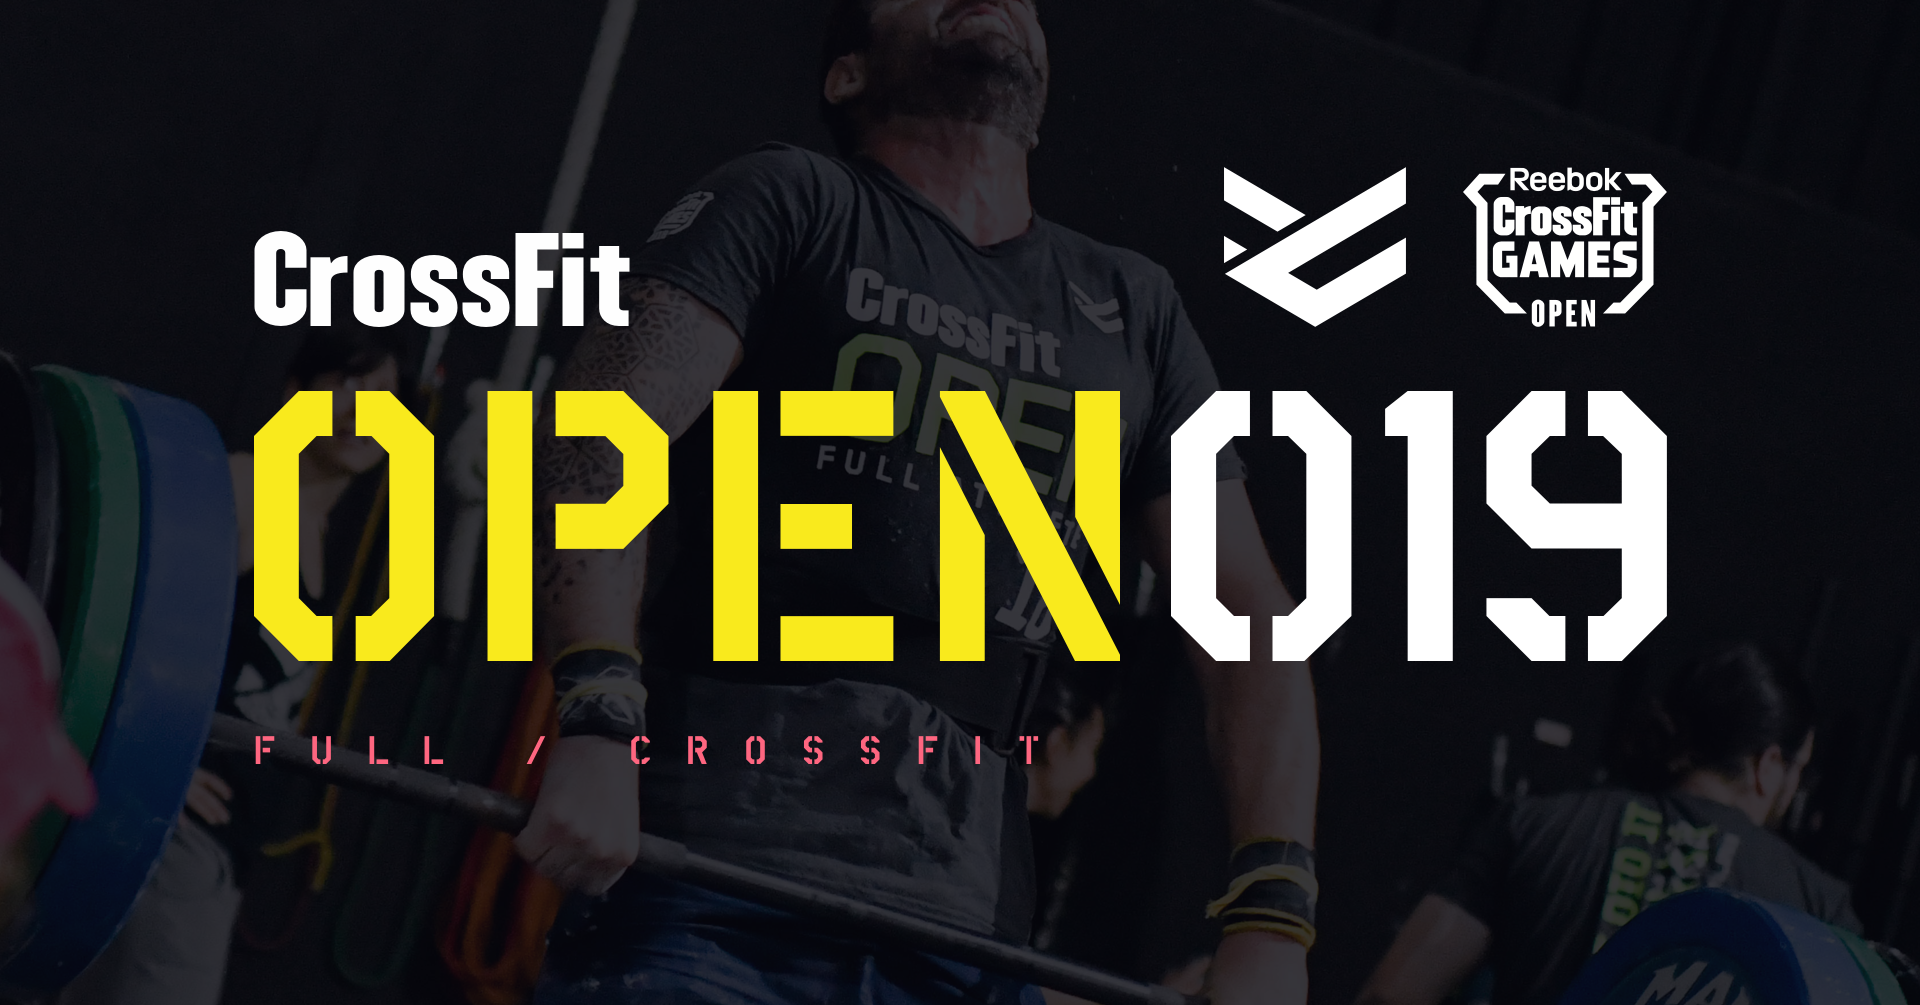 CrossfitGamesOpen.png